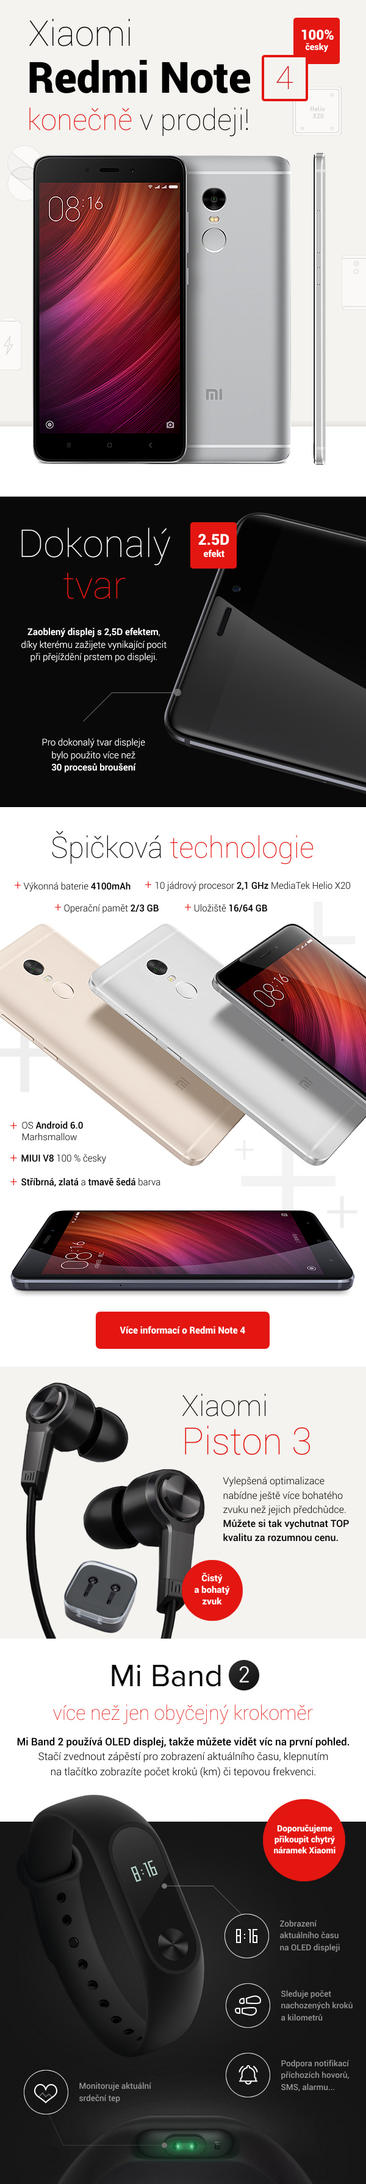 Xiaomi Redmi Note 4 newsletter by romankac